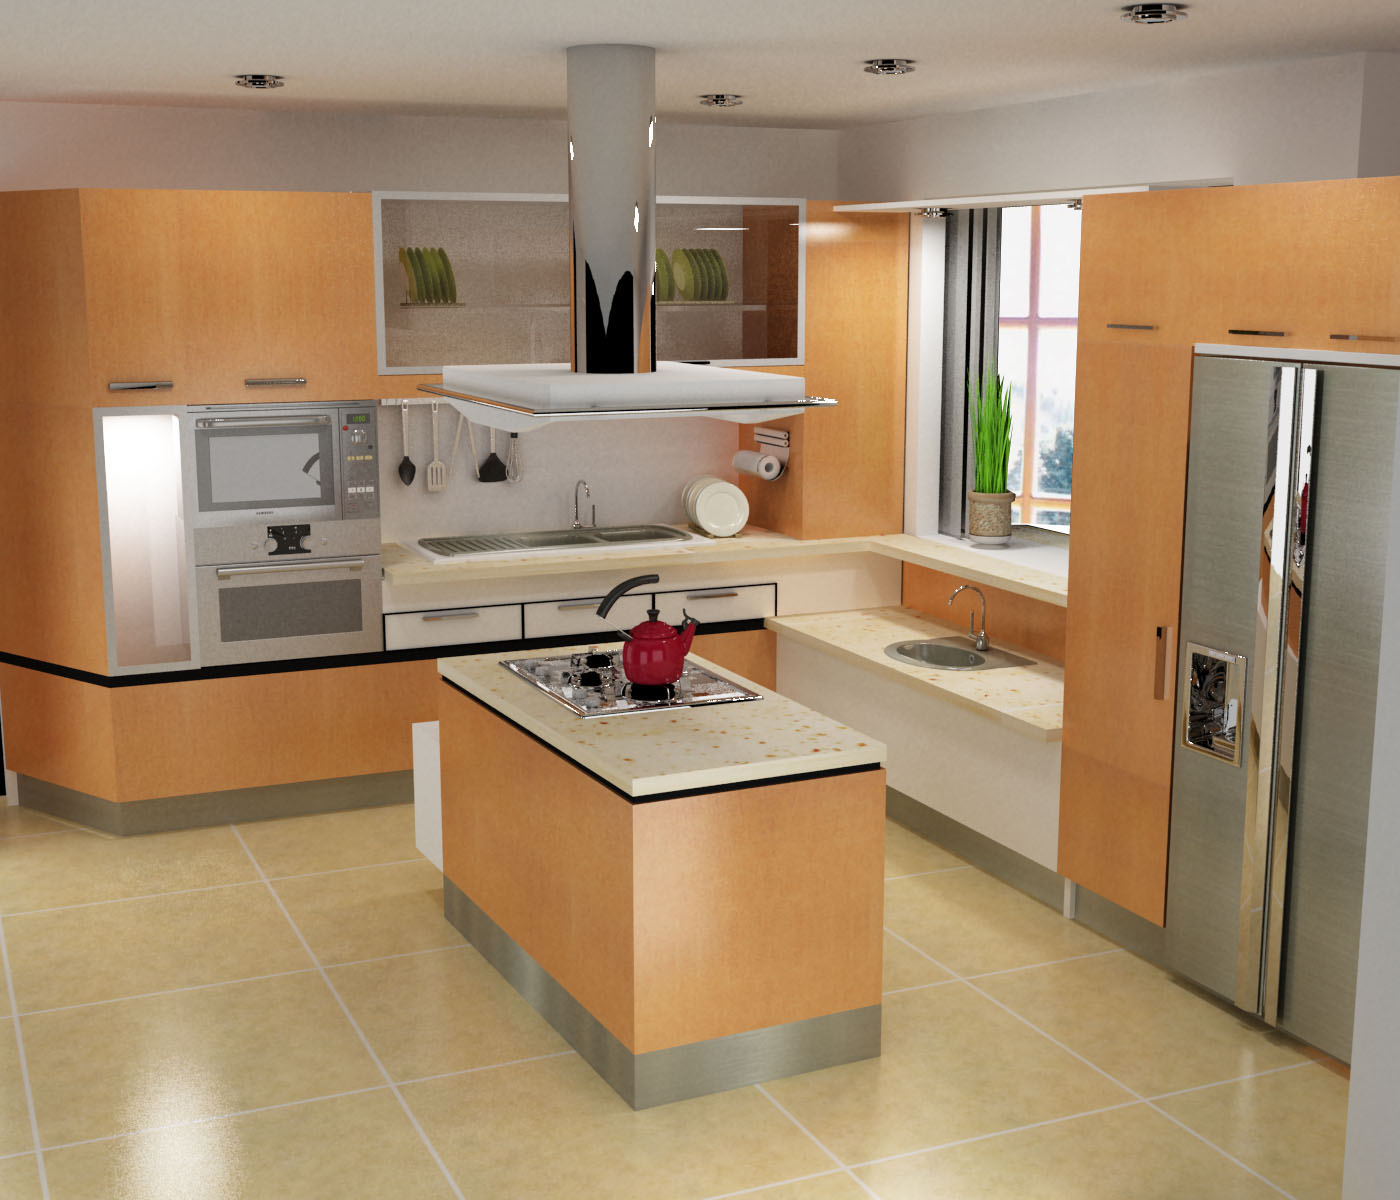 Ideas para remodelar y decorar por t remodela for Ideas muebles cocina